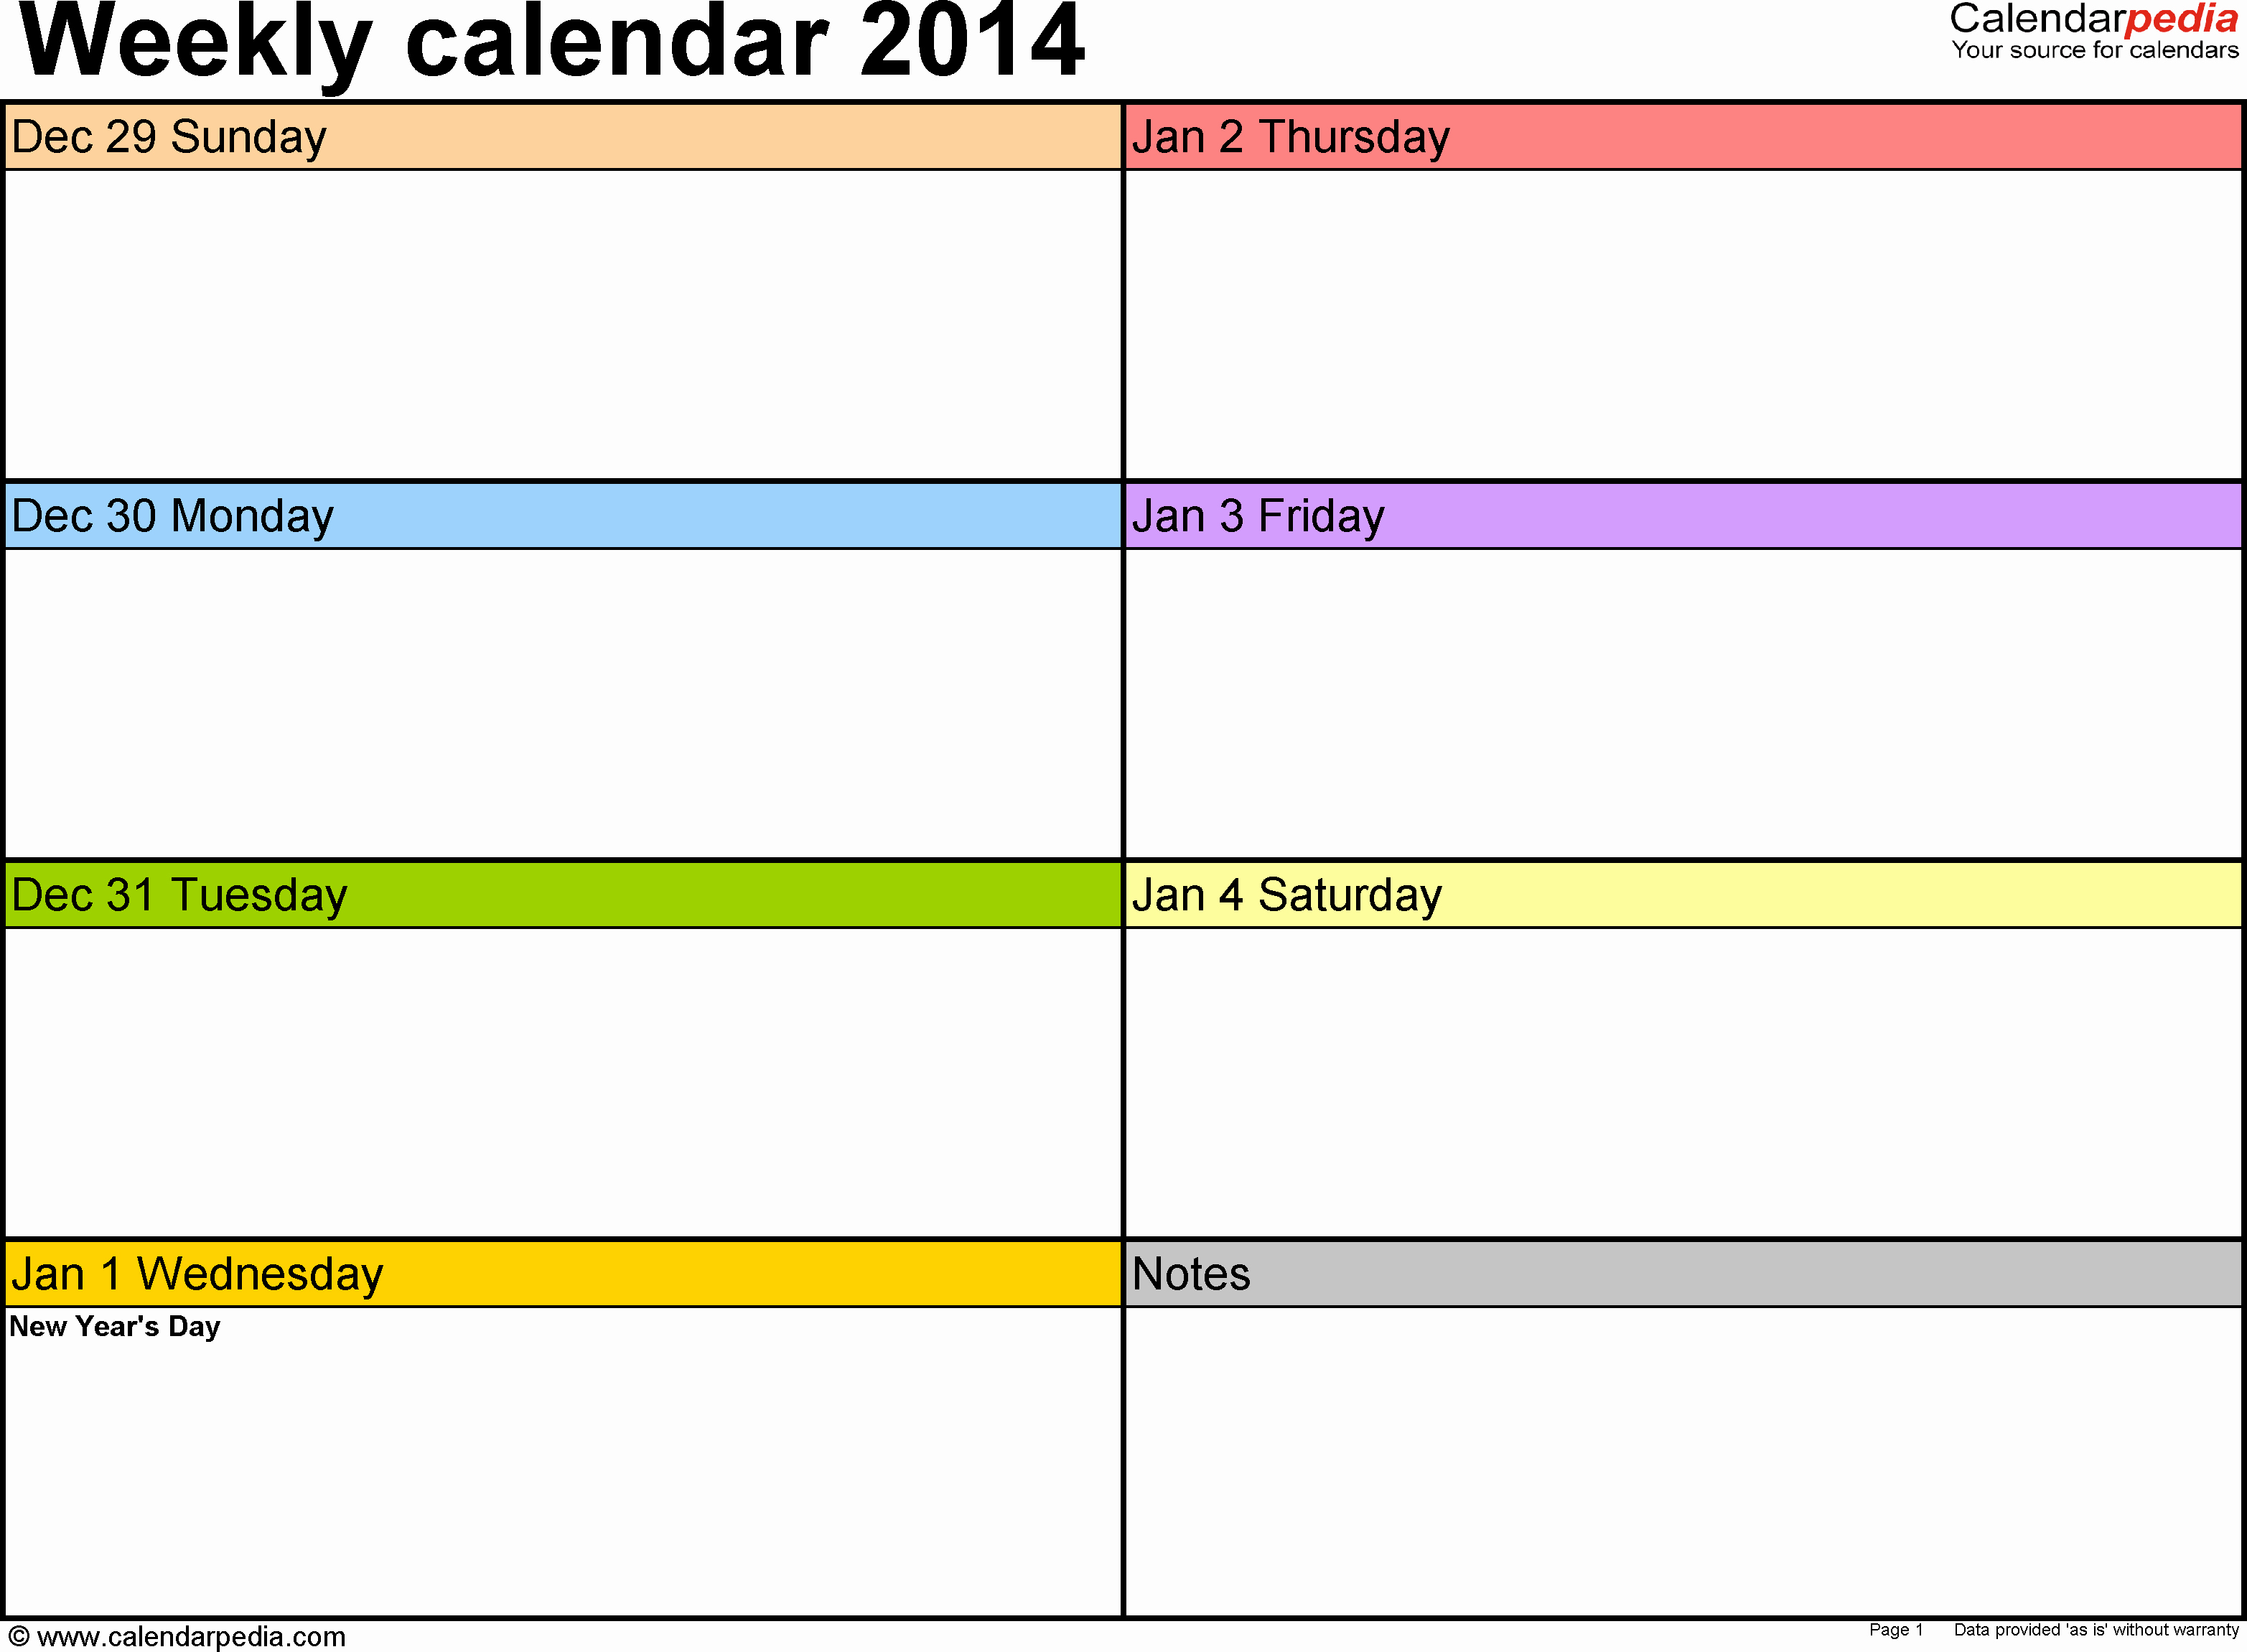 Weekly Schedule Template Pdf Unique Weekly Calendar 2014 for Pdf 4 Free Printable Templates